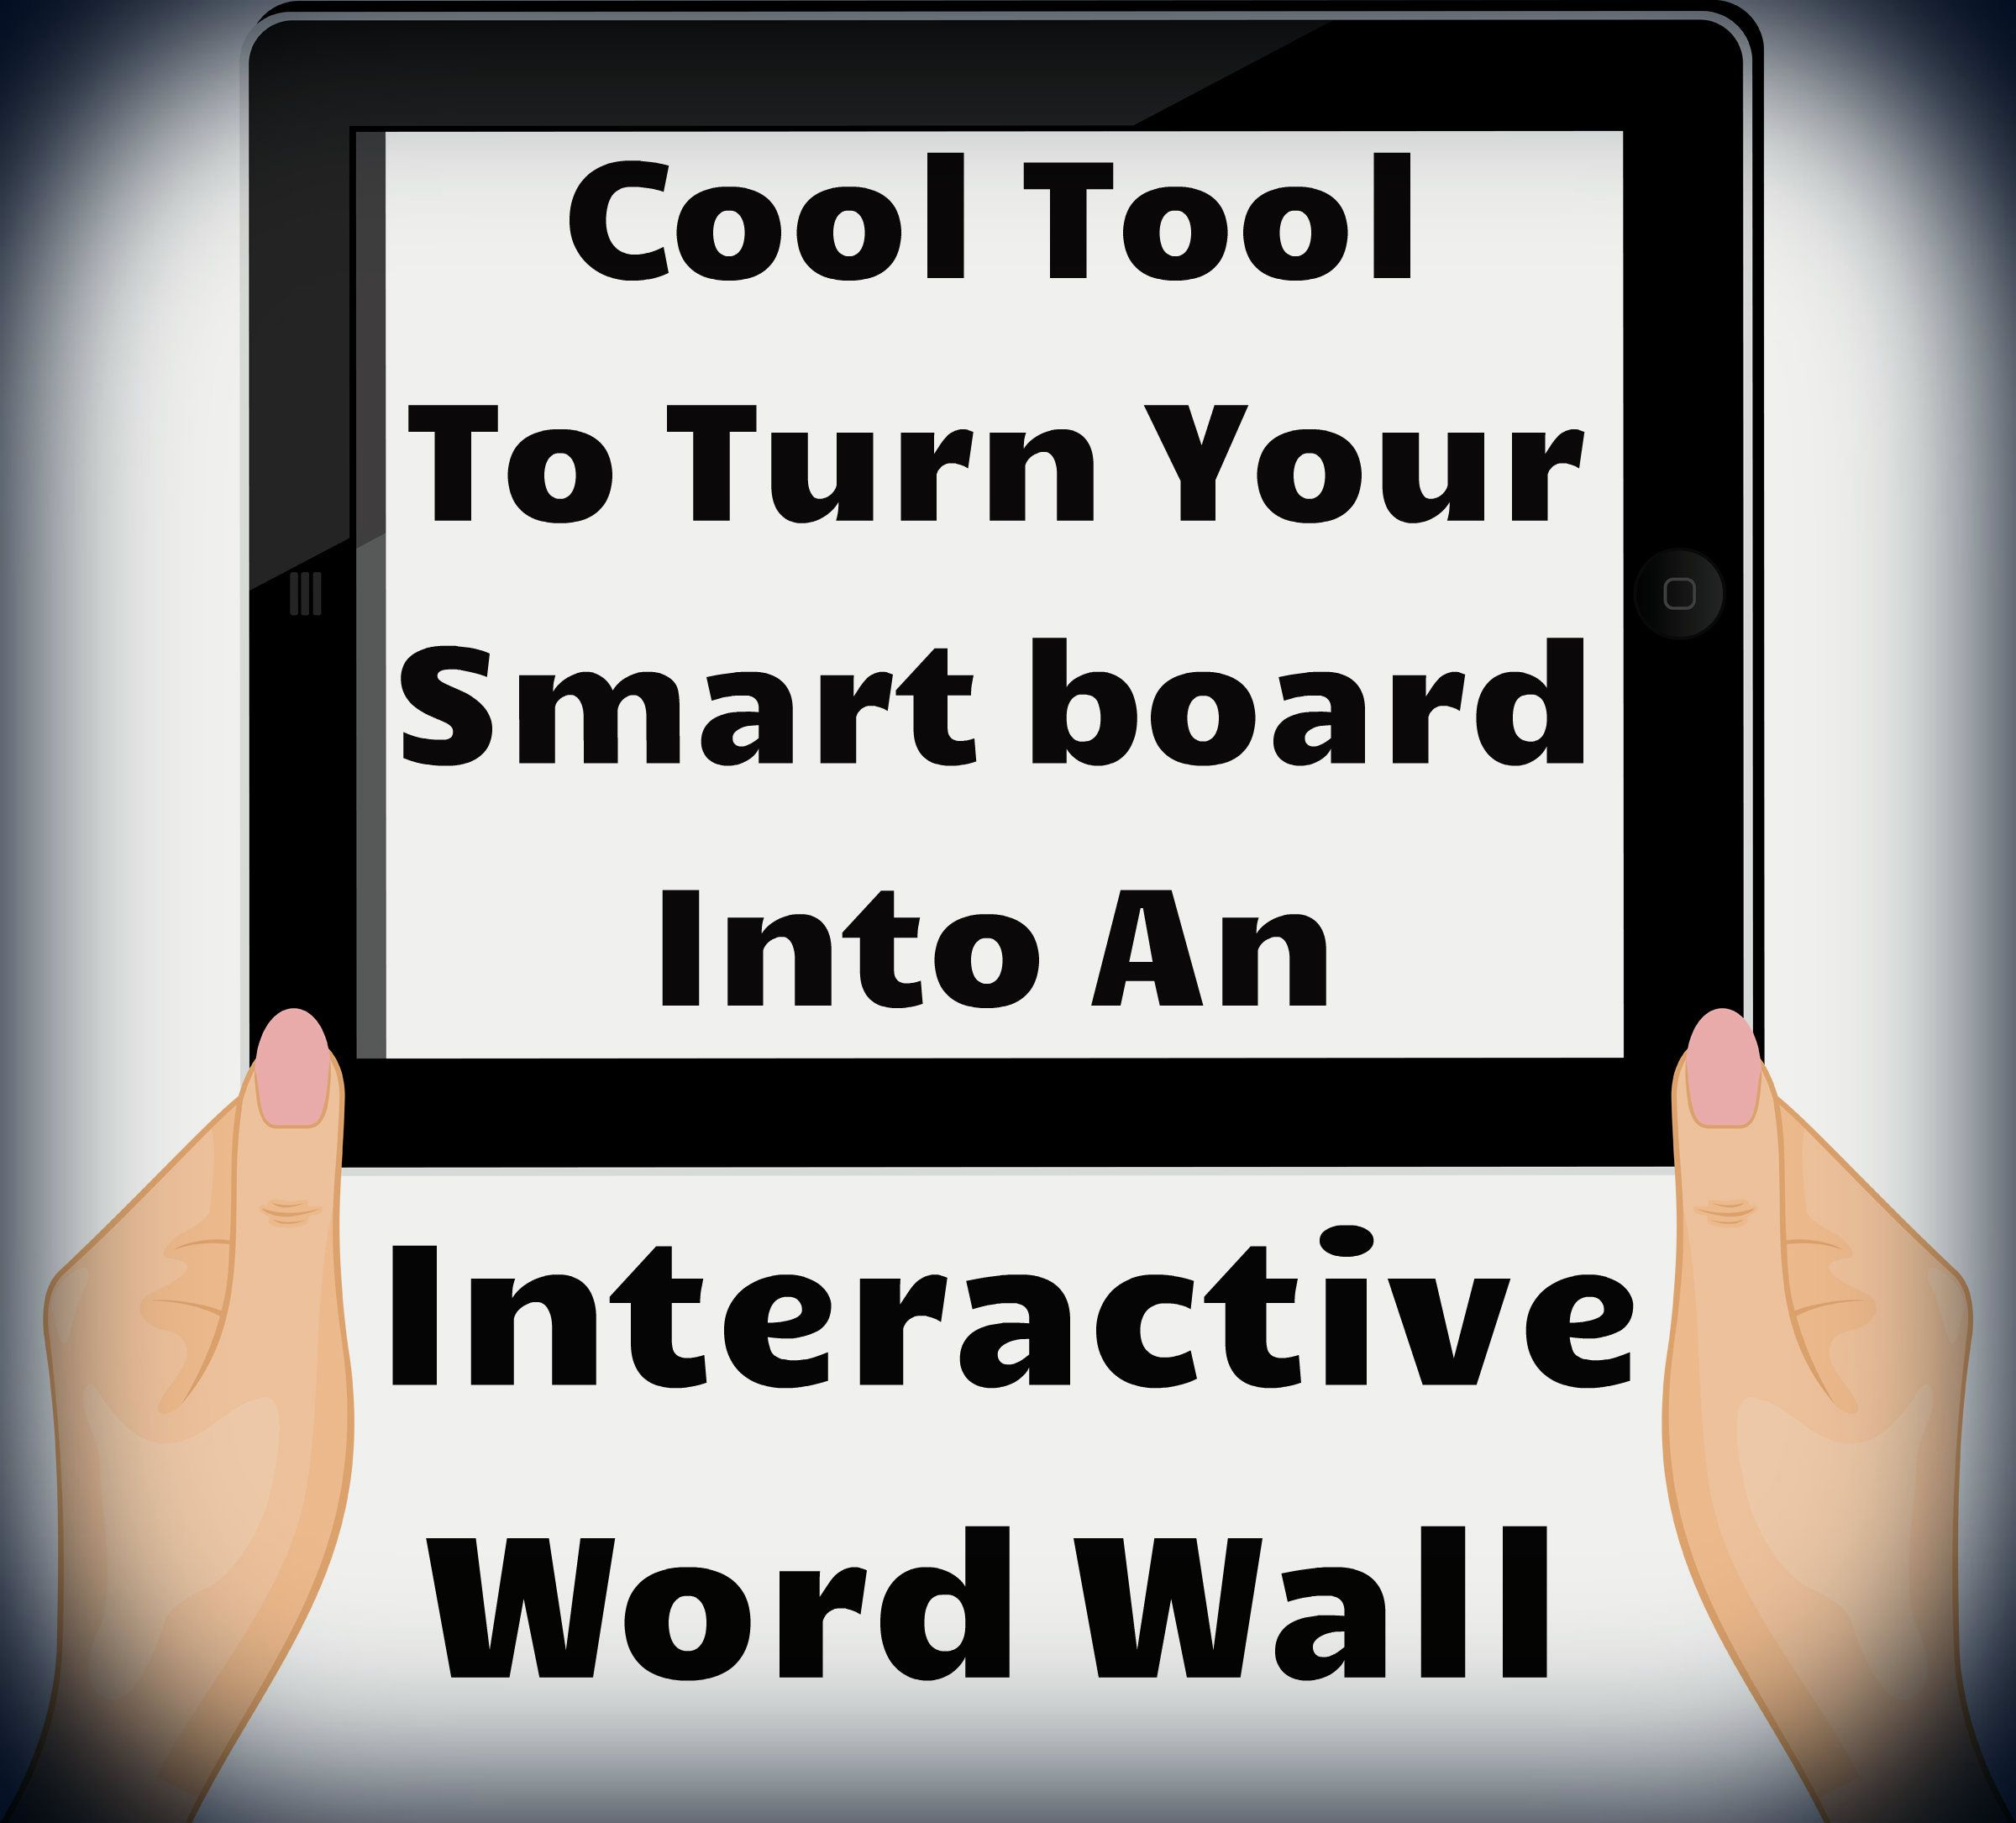 Cool tool to turn your smart board into an interactive word wall ...